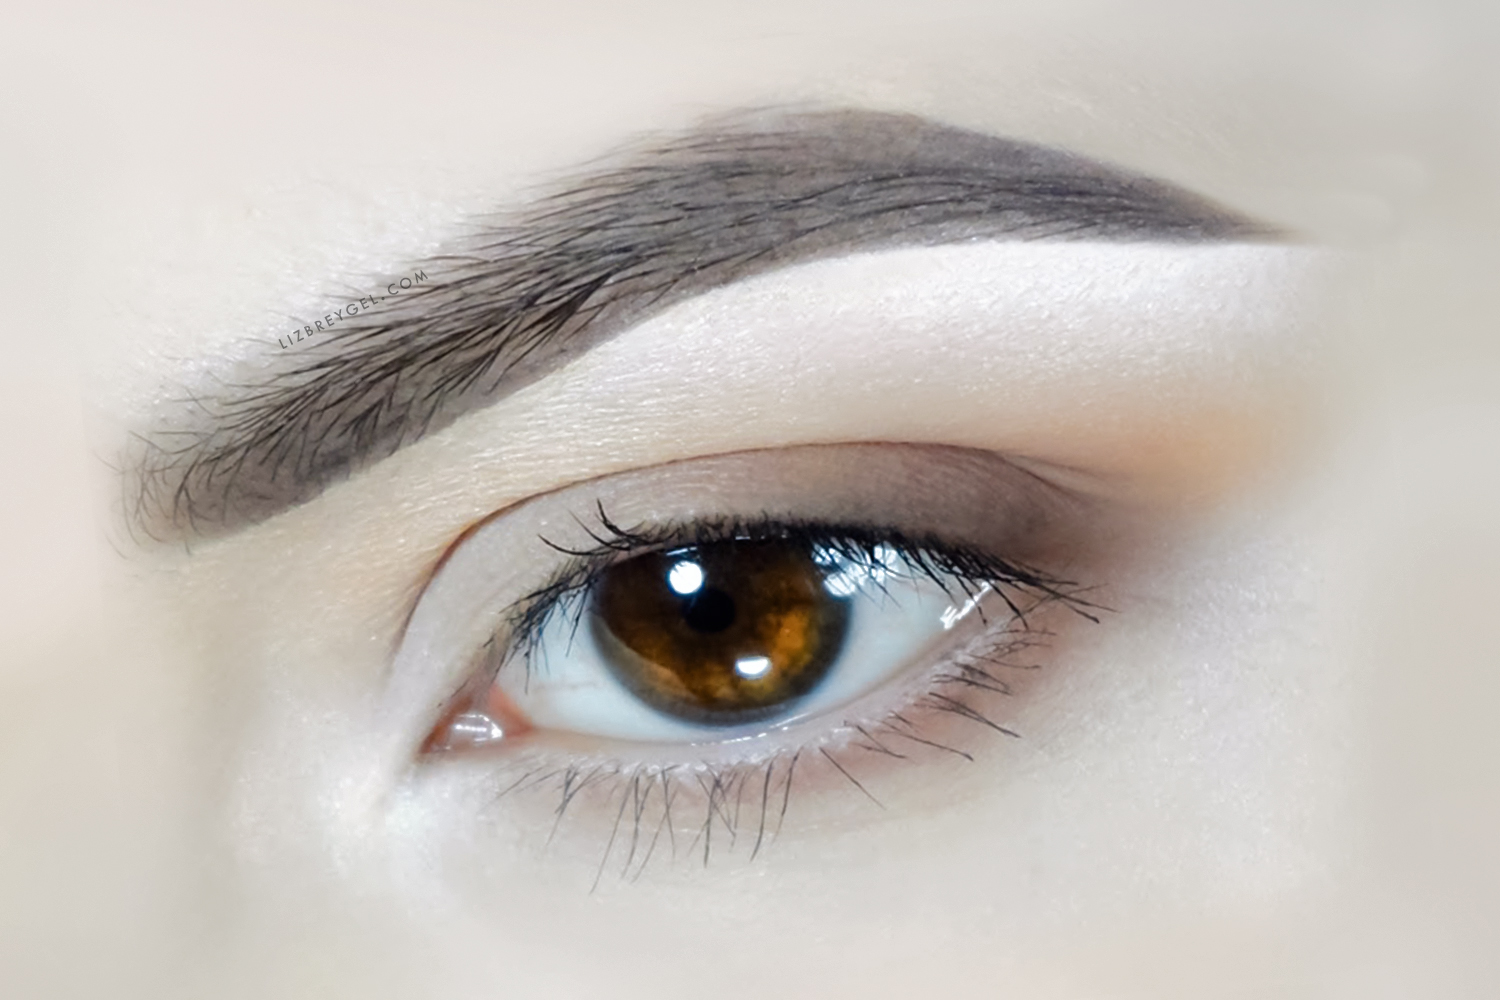 a close up image of ab eye with natural makeup look